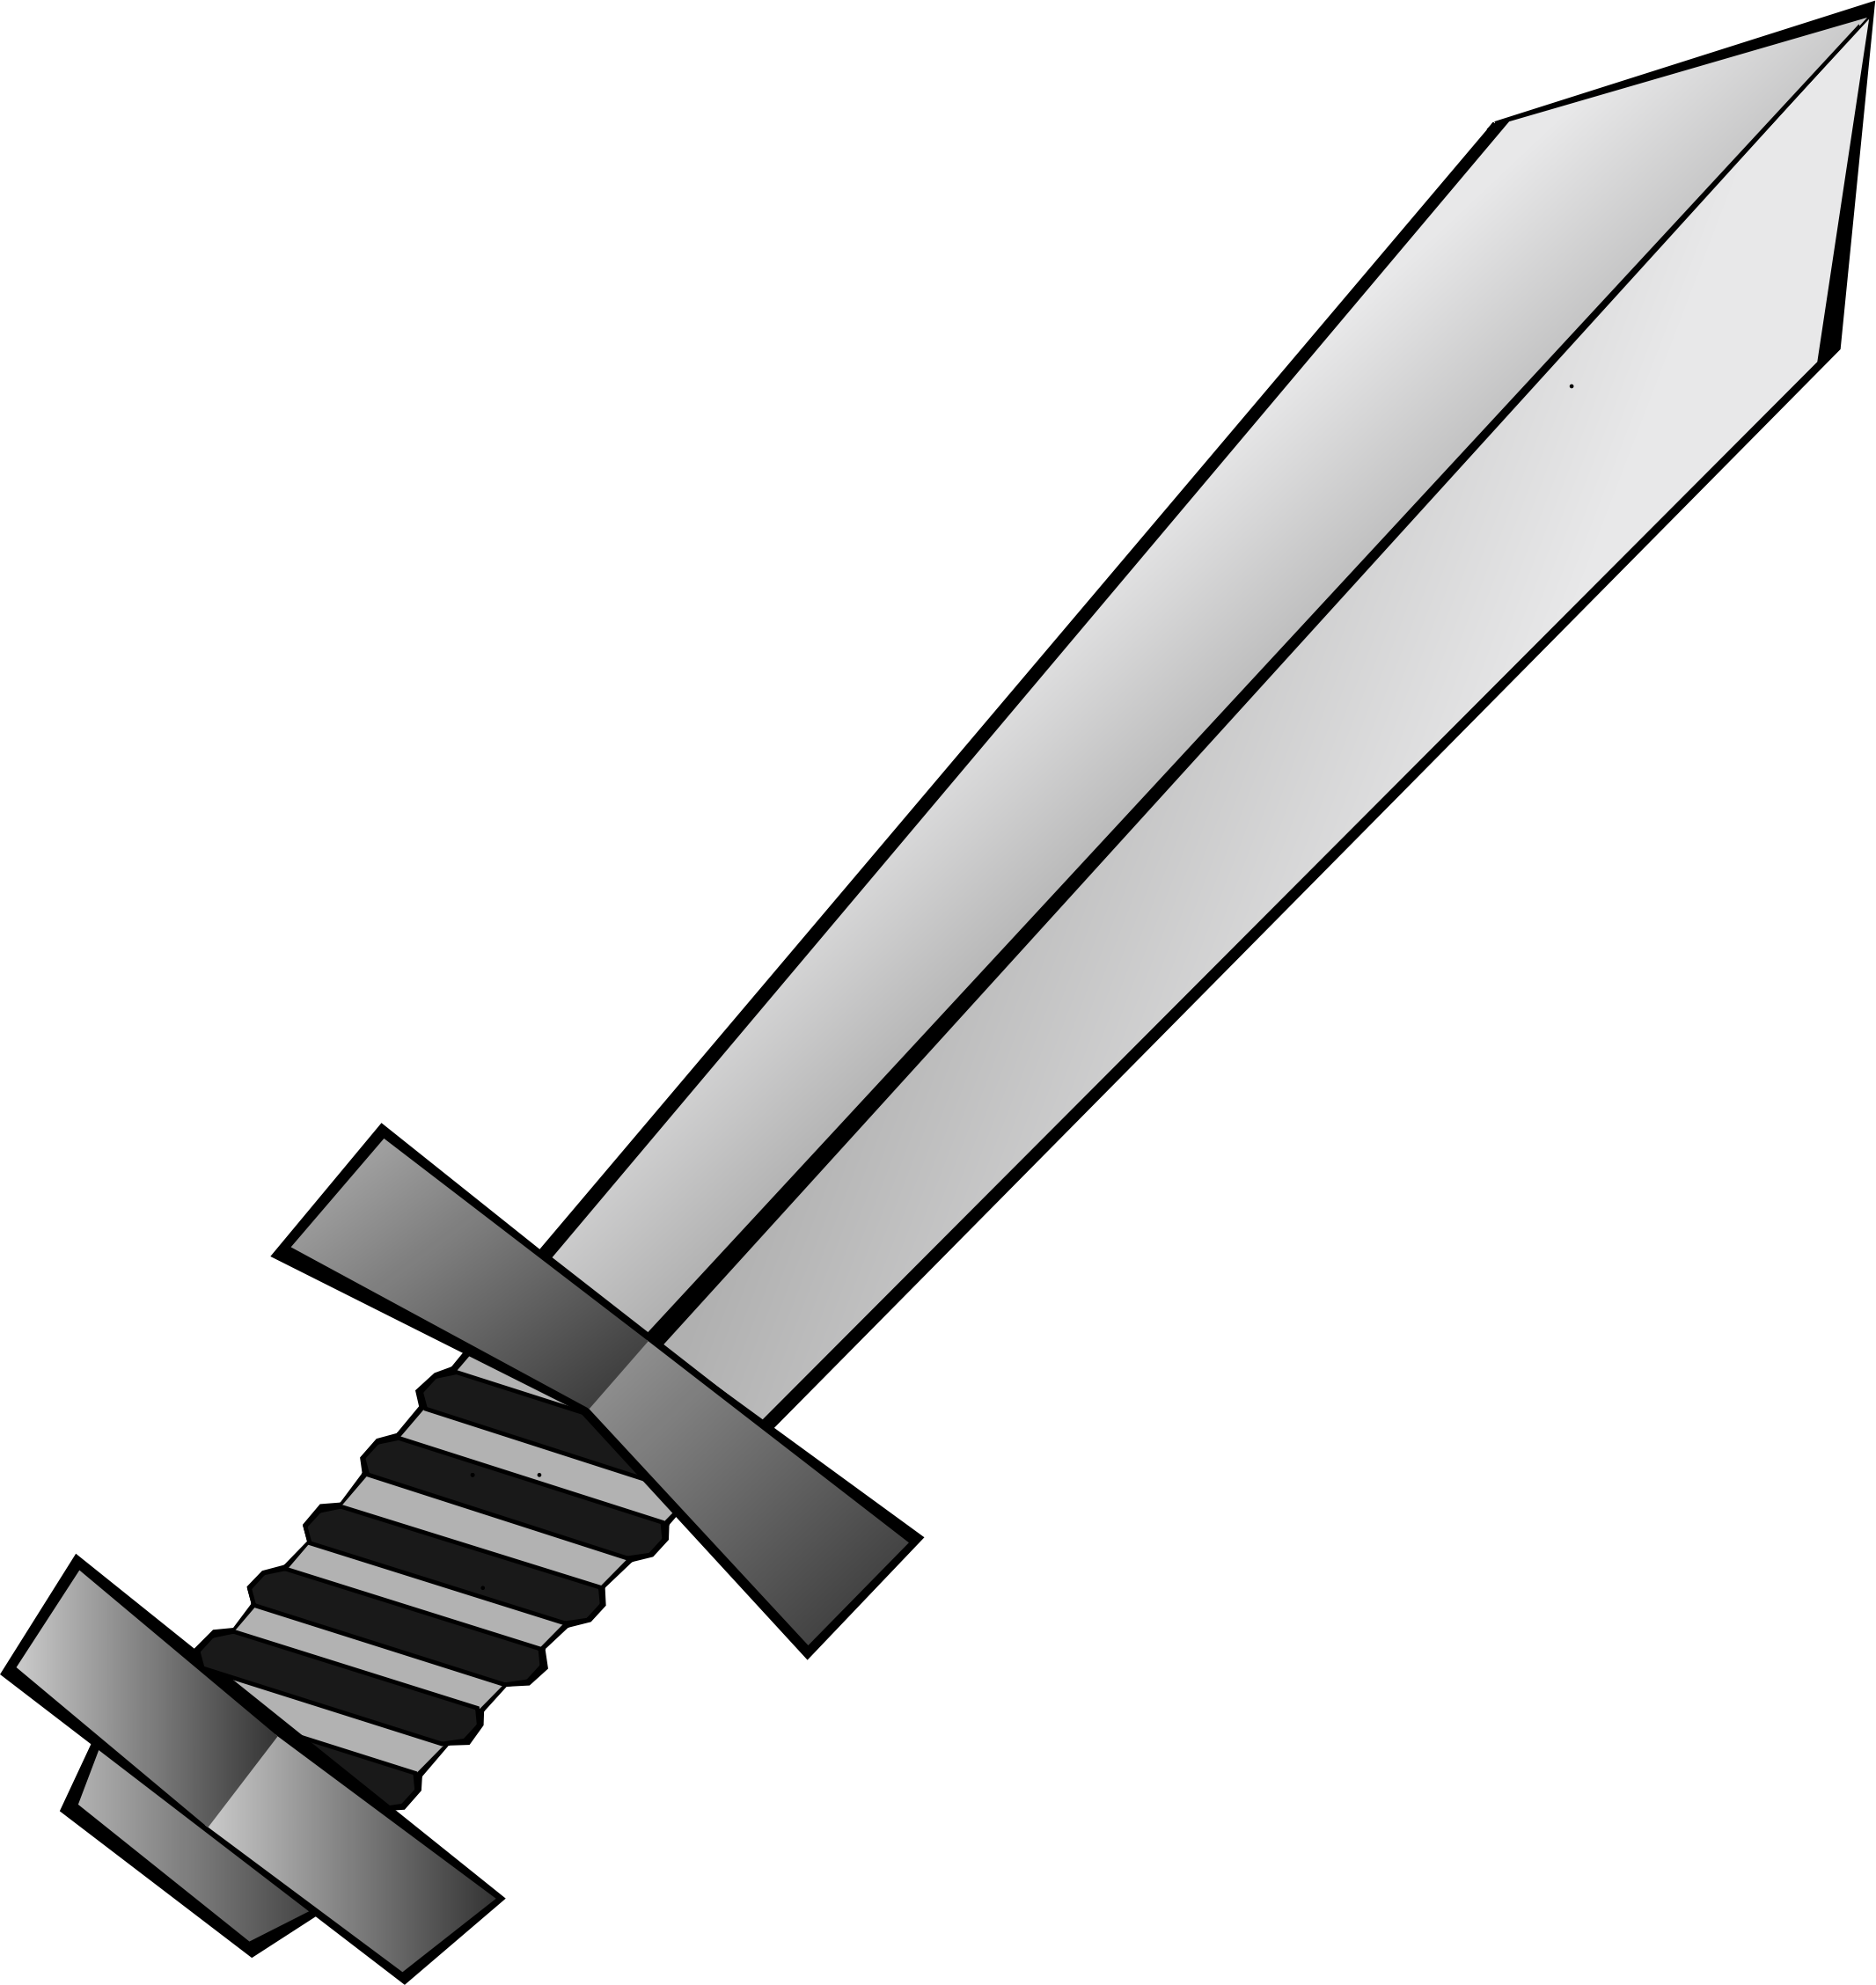 Sword clipart #6, Download drawings